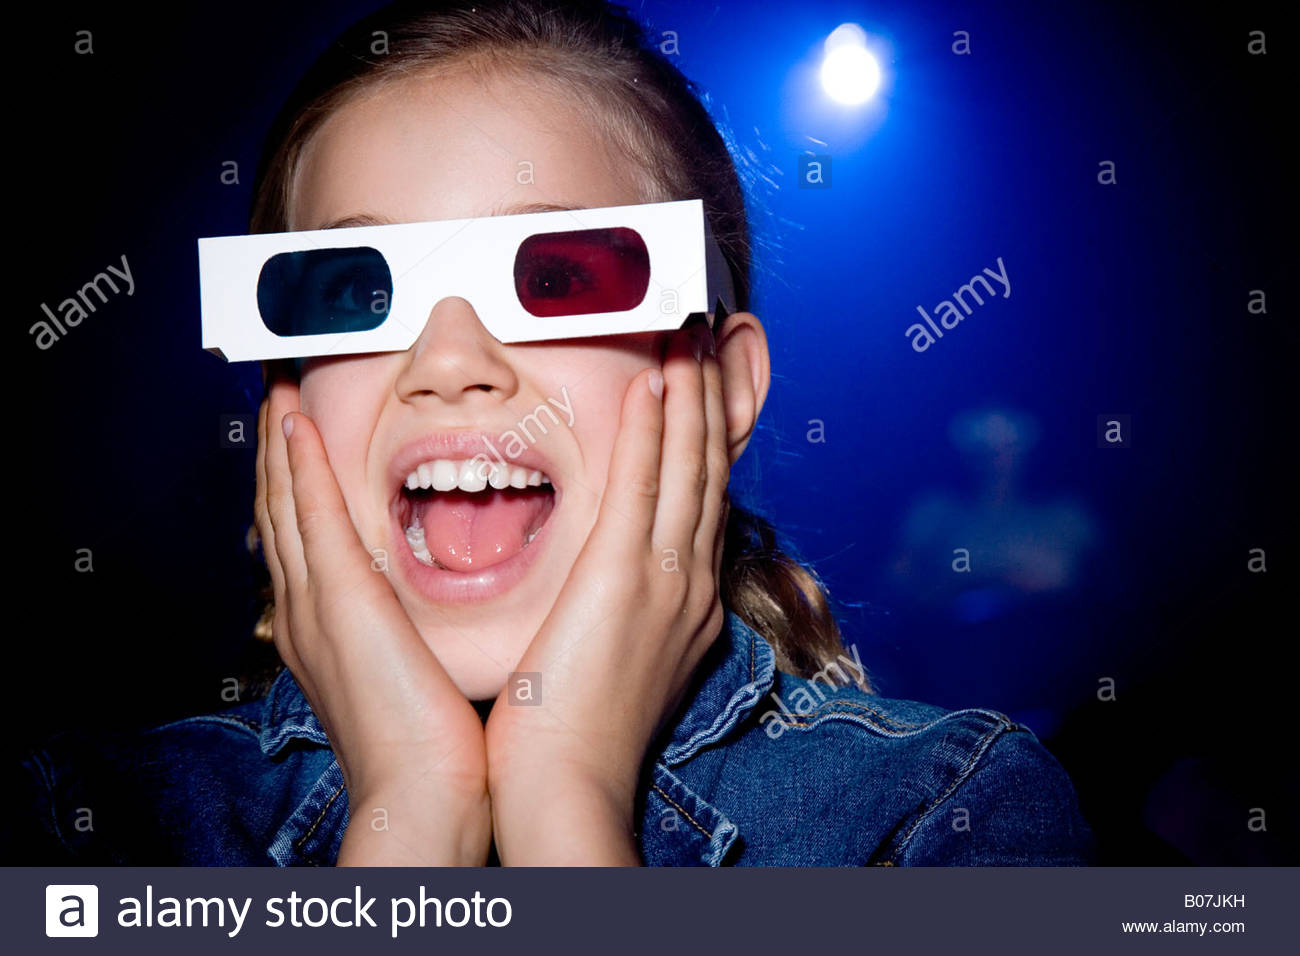 Girl at the cinema watching a film through 3-D glasses - Stock Image